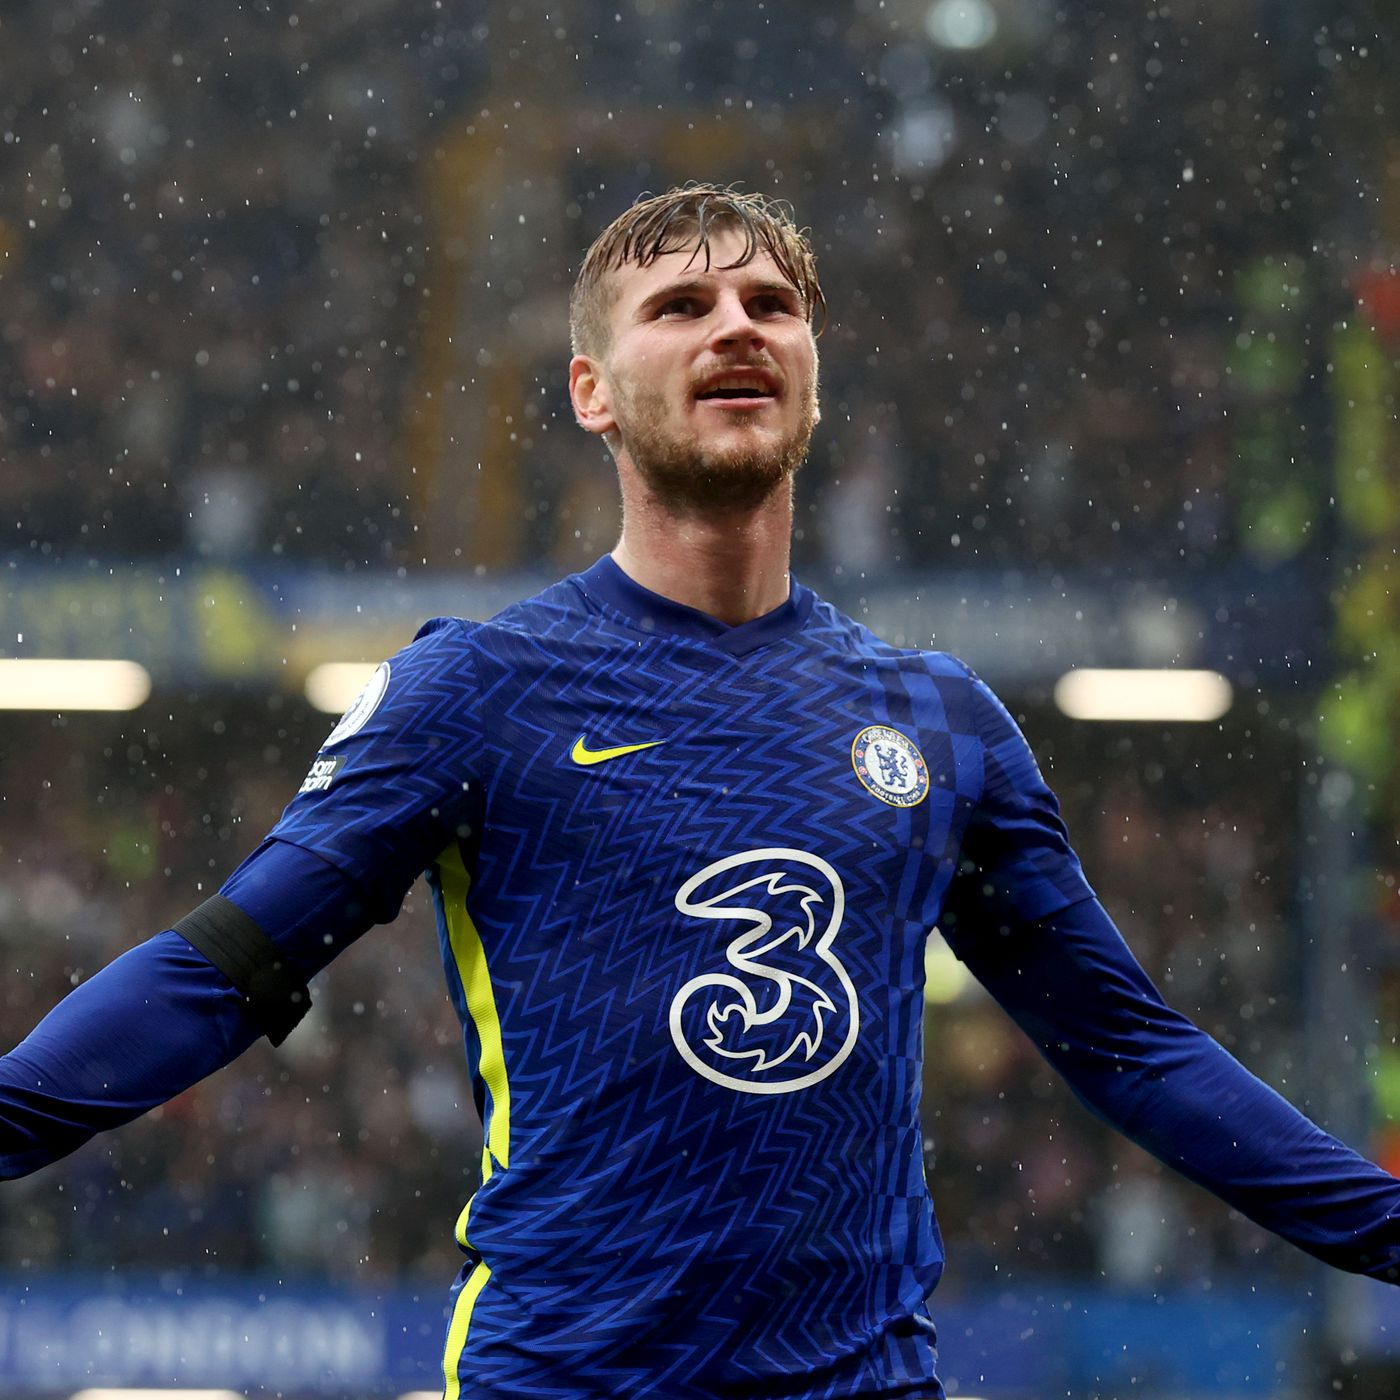 Timo Werner of Chelsea: If I didn't ignore the critics, I wouldn't be able to play.